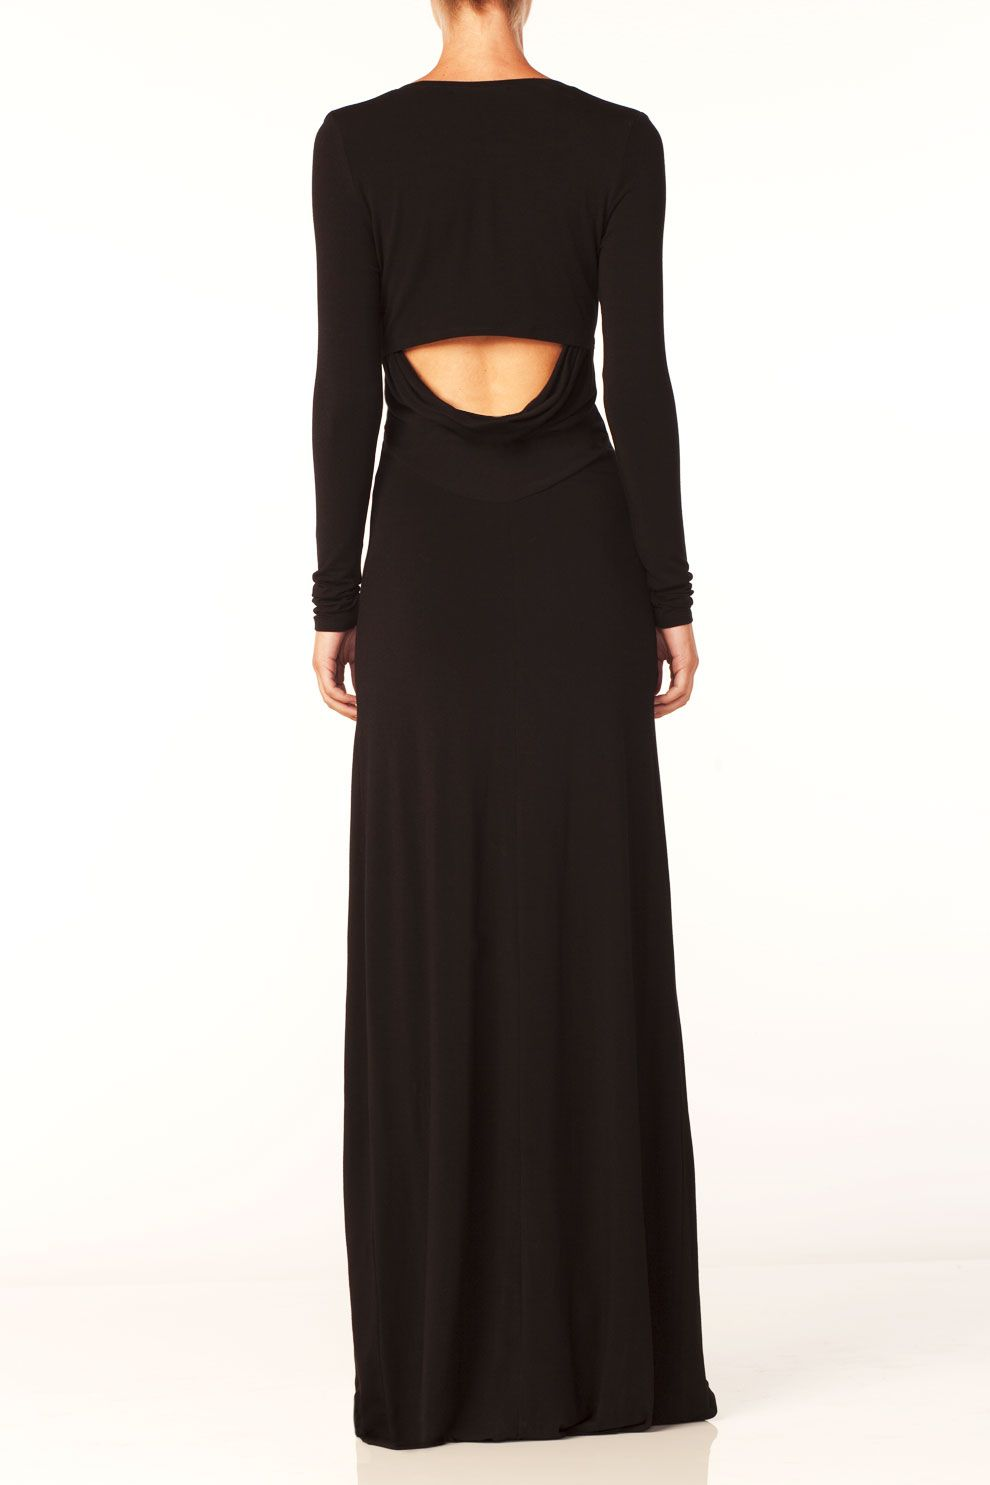 Bella luxx long sleeve slit maxi dress inspiration in dress